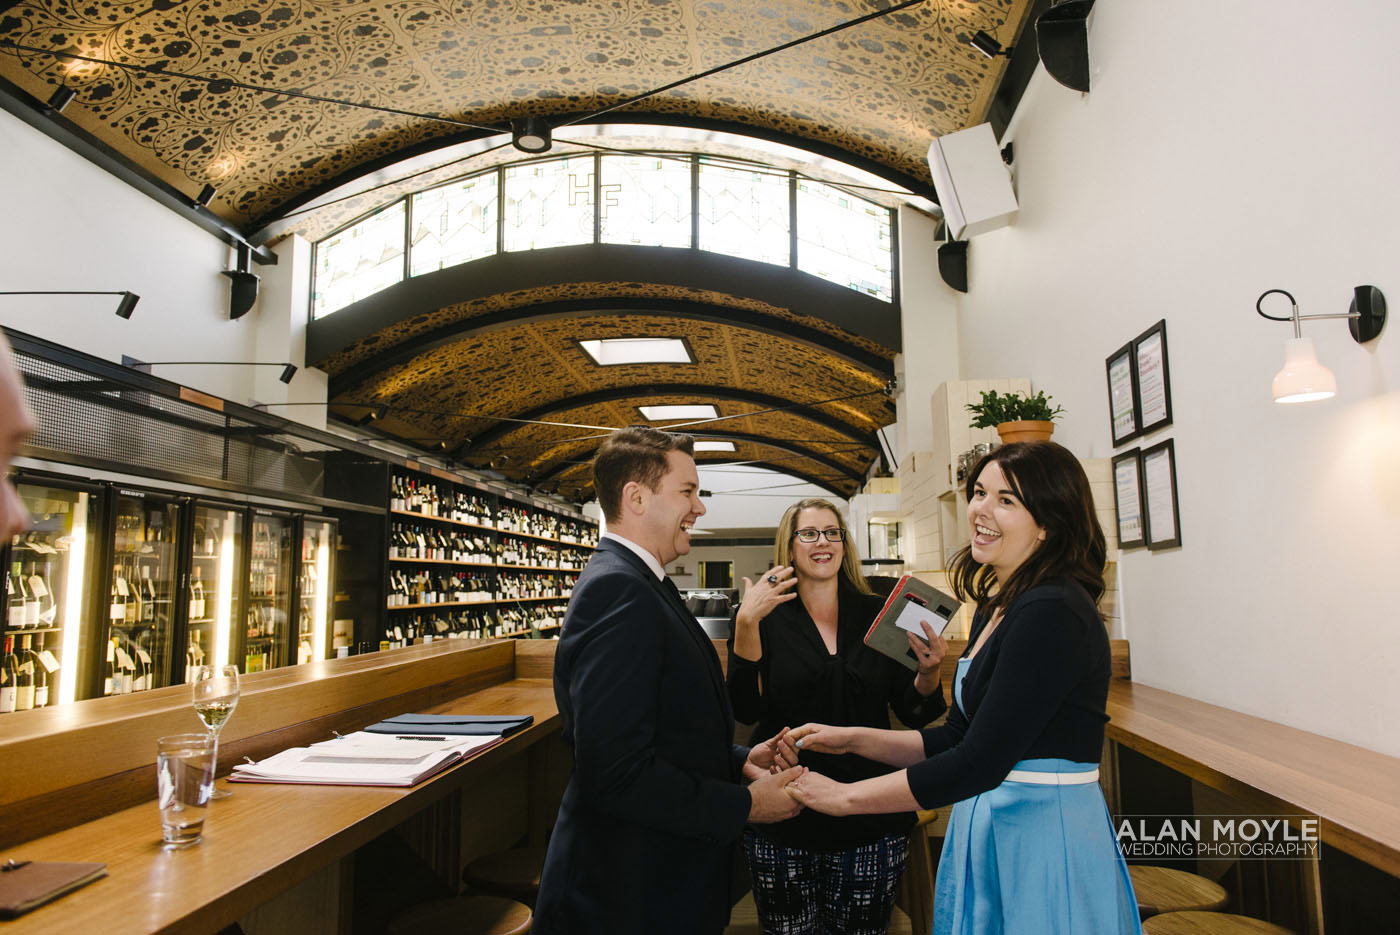 1410kershaw-017-melbourne_wedding_photographer_photography_elopement_larwill_studio_orange_elope_bride_blue_bayside_photobat_alan_moyle_winebar_port_melbourne.jpg